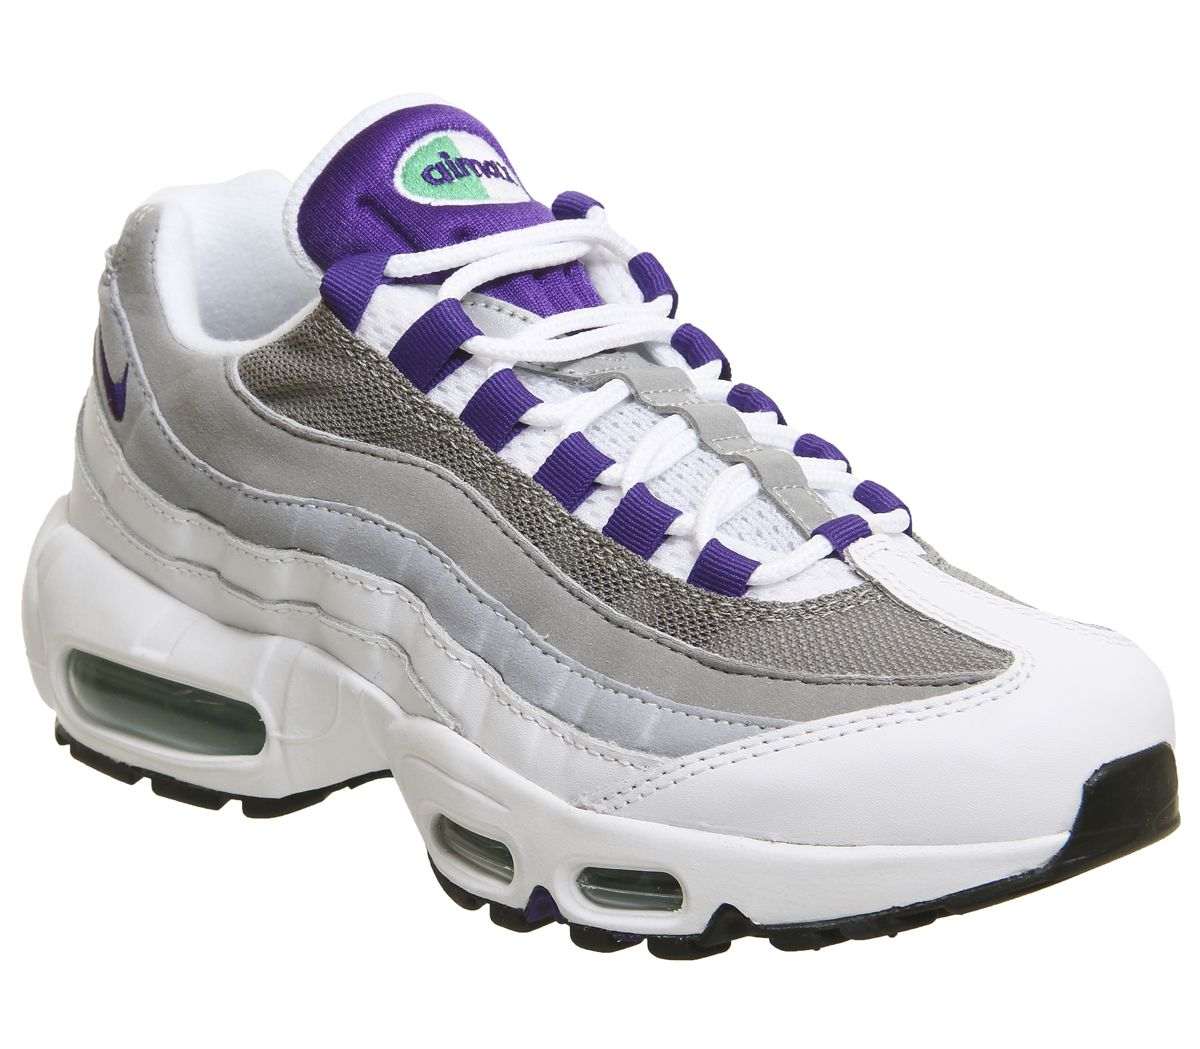 san francisco a460b 34545 Nike Air Max 95 Trainers White Court Purple Emerald Green F - Hers ...